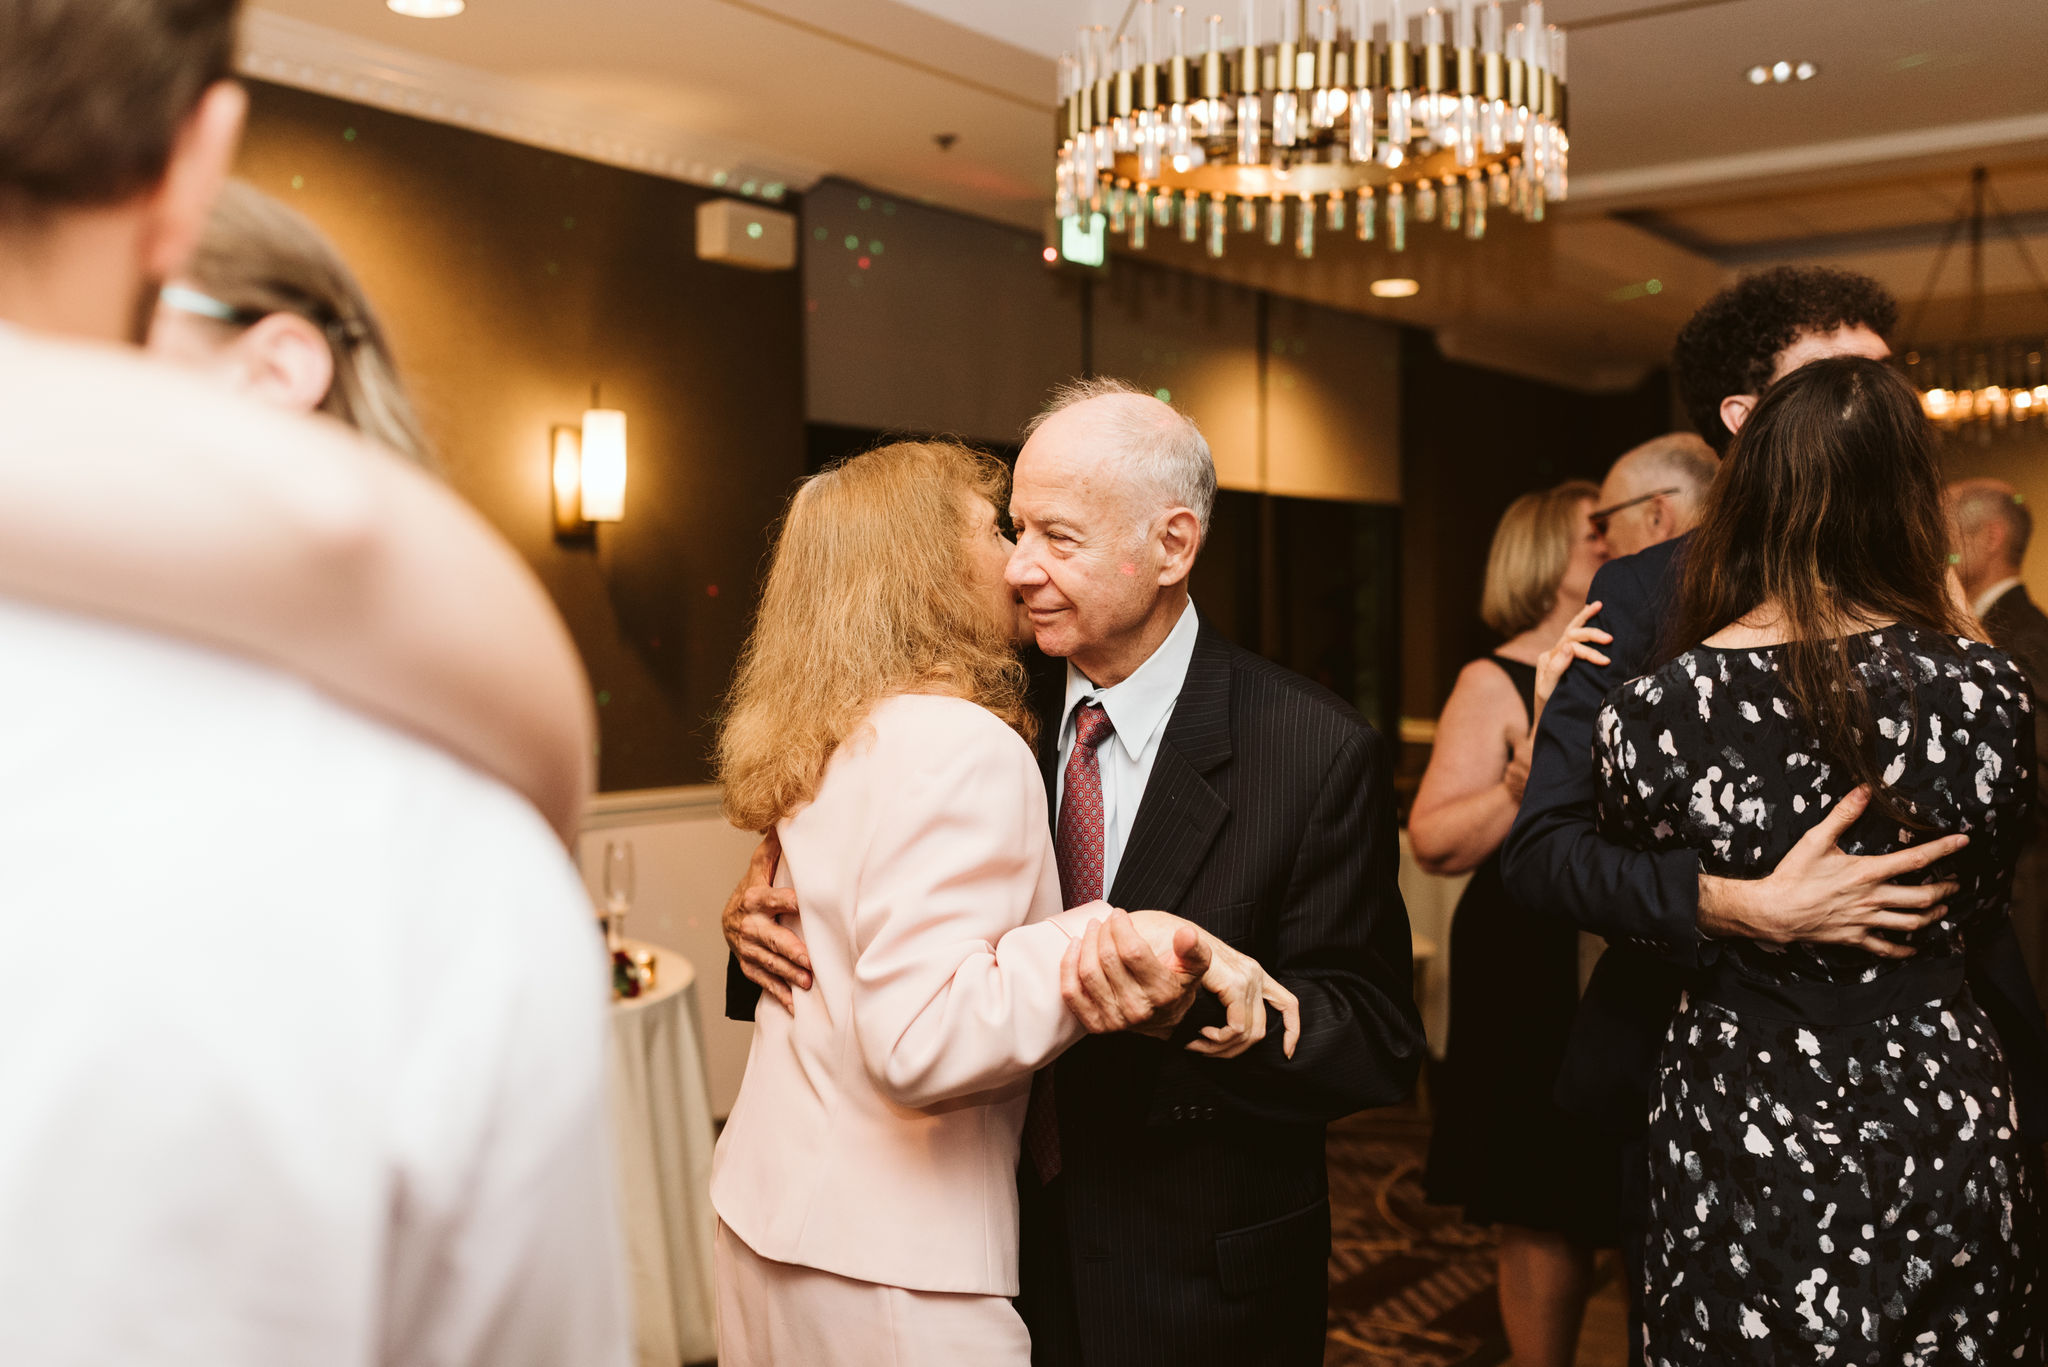 Phoenix Maryland, Baltimore Wedding Photographer, Eagle's Nest Country Club, Classic, Romantic, Older Couple Sweetly Dancing at Reception